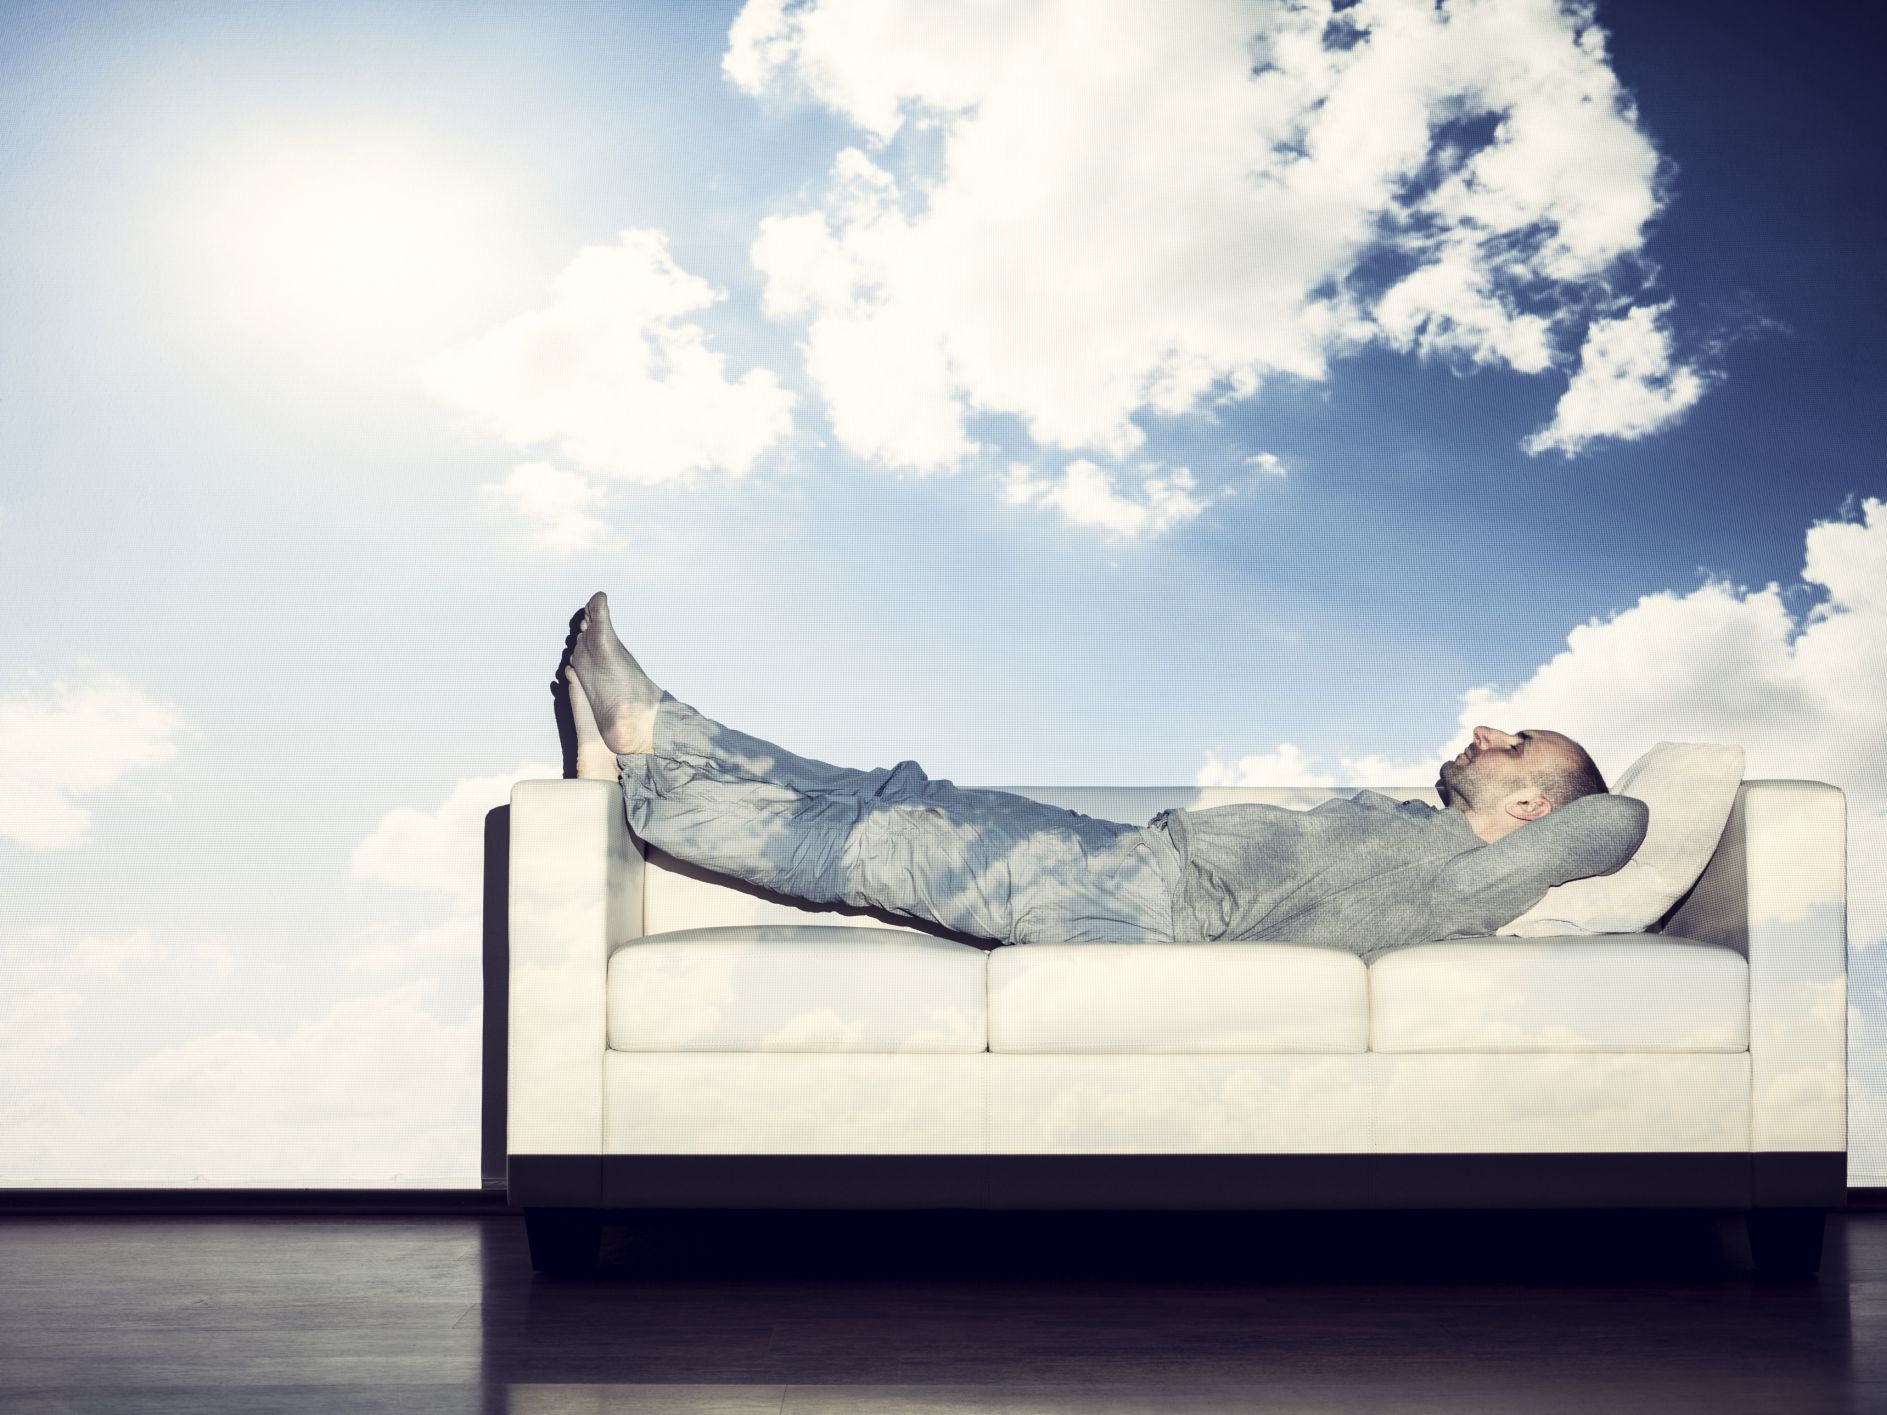 How to Interpret Last Night's Dream About Weather